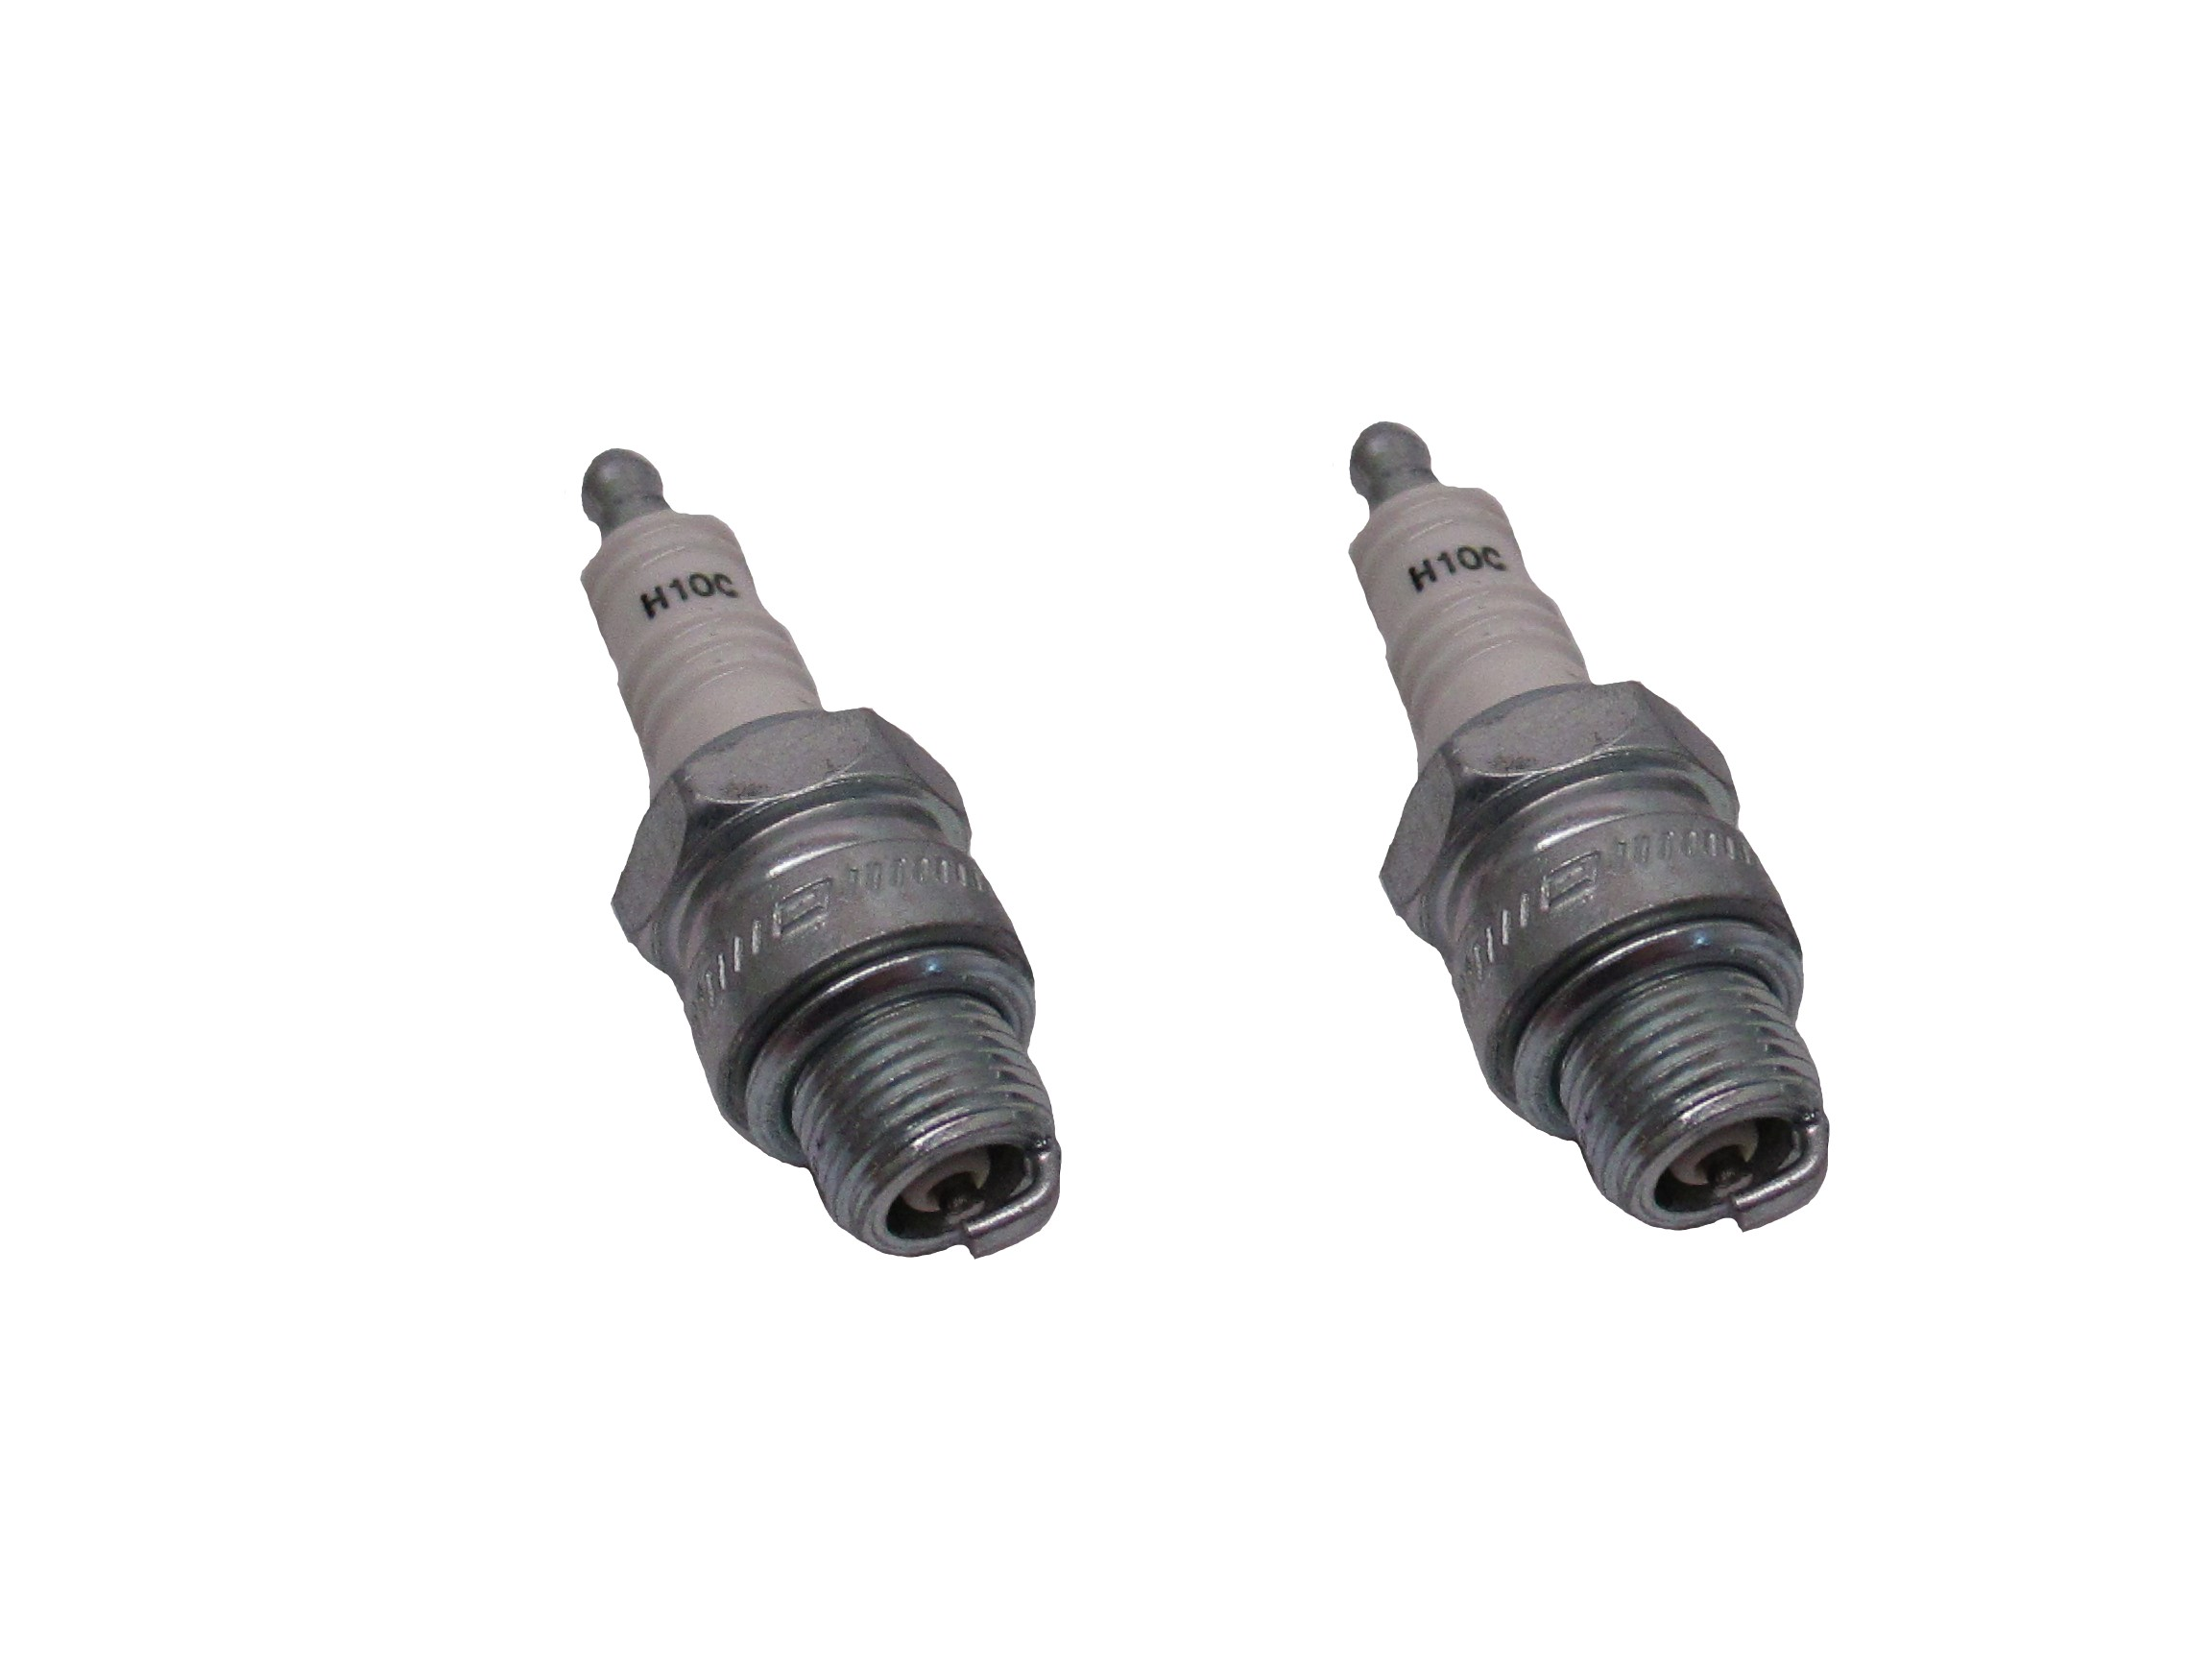 Pack of 2 Copper Plus Small Engine Replacement Spark Plug Champion H10C 844